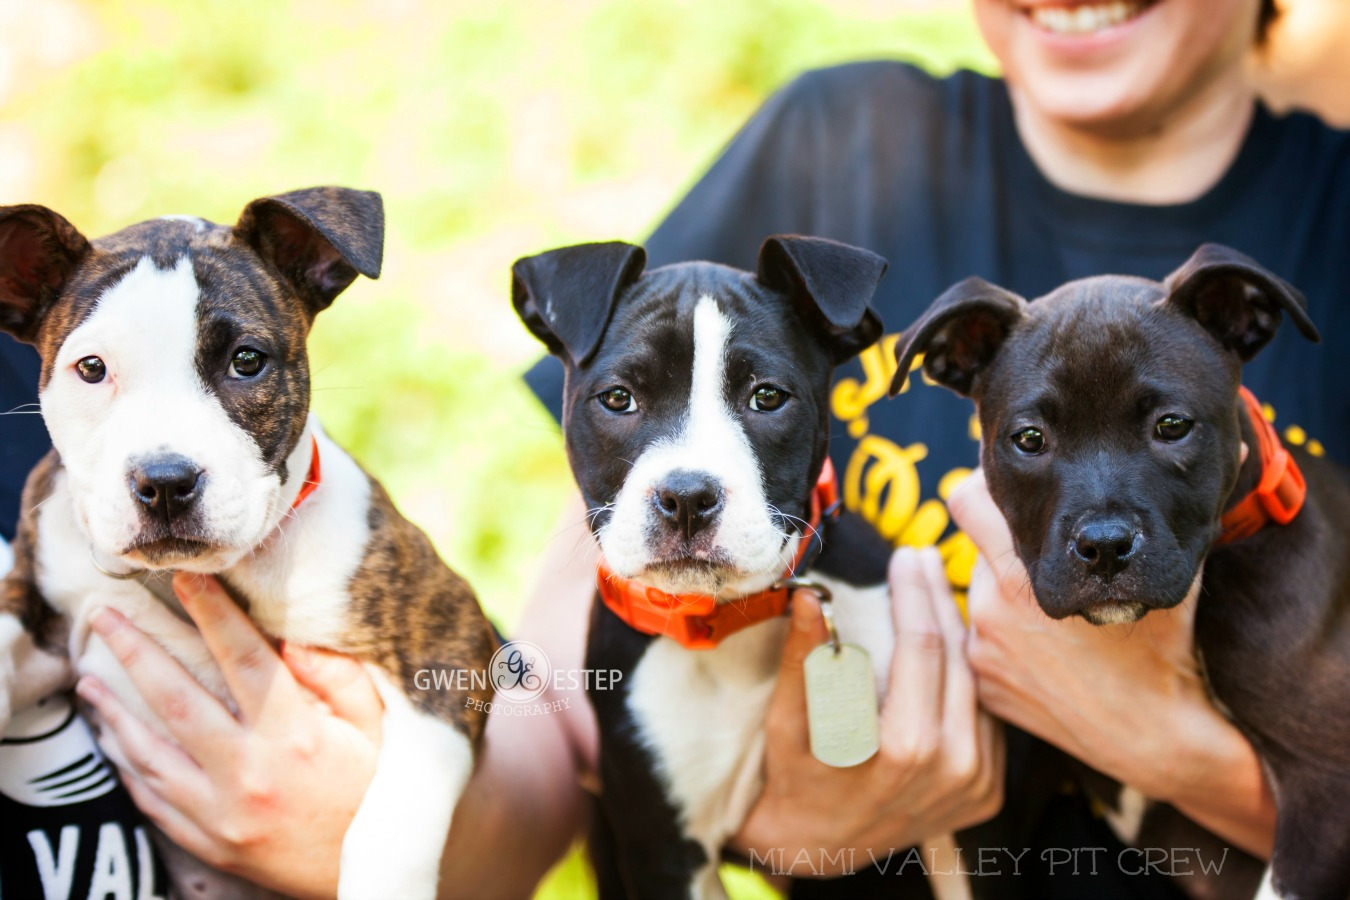 adoptable dogs on Pet Finder for Miami Valley Pit Crew